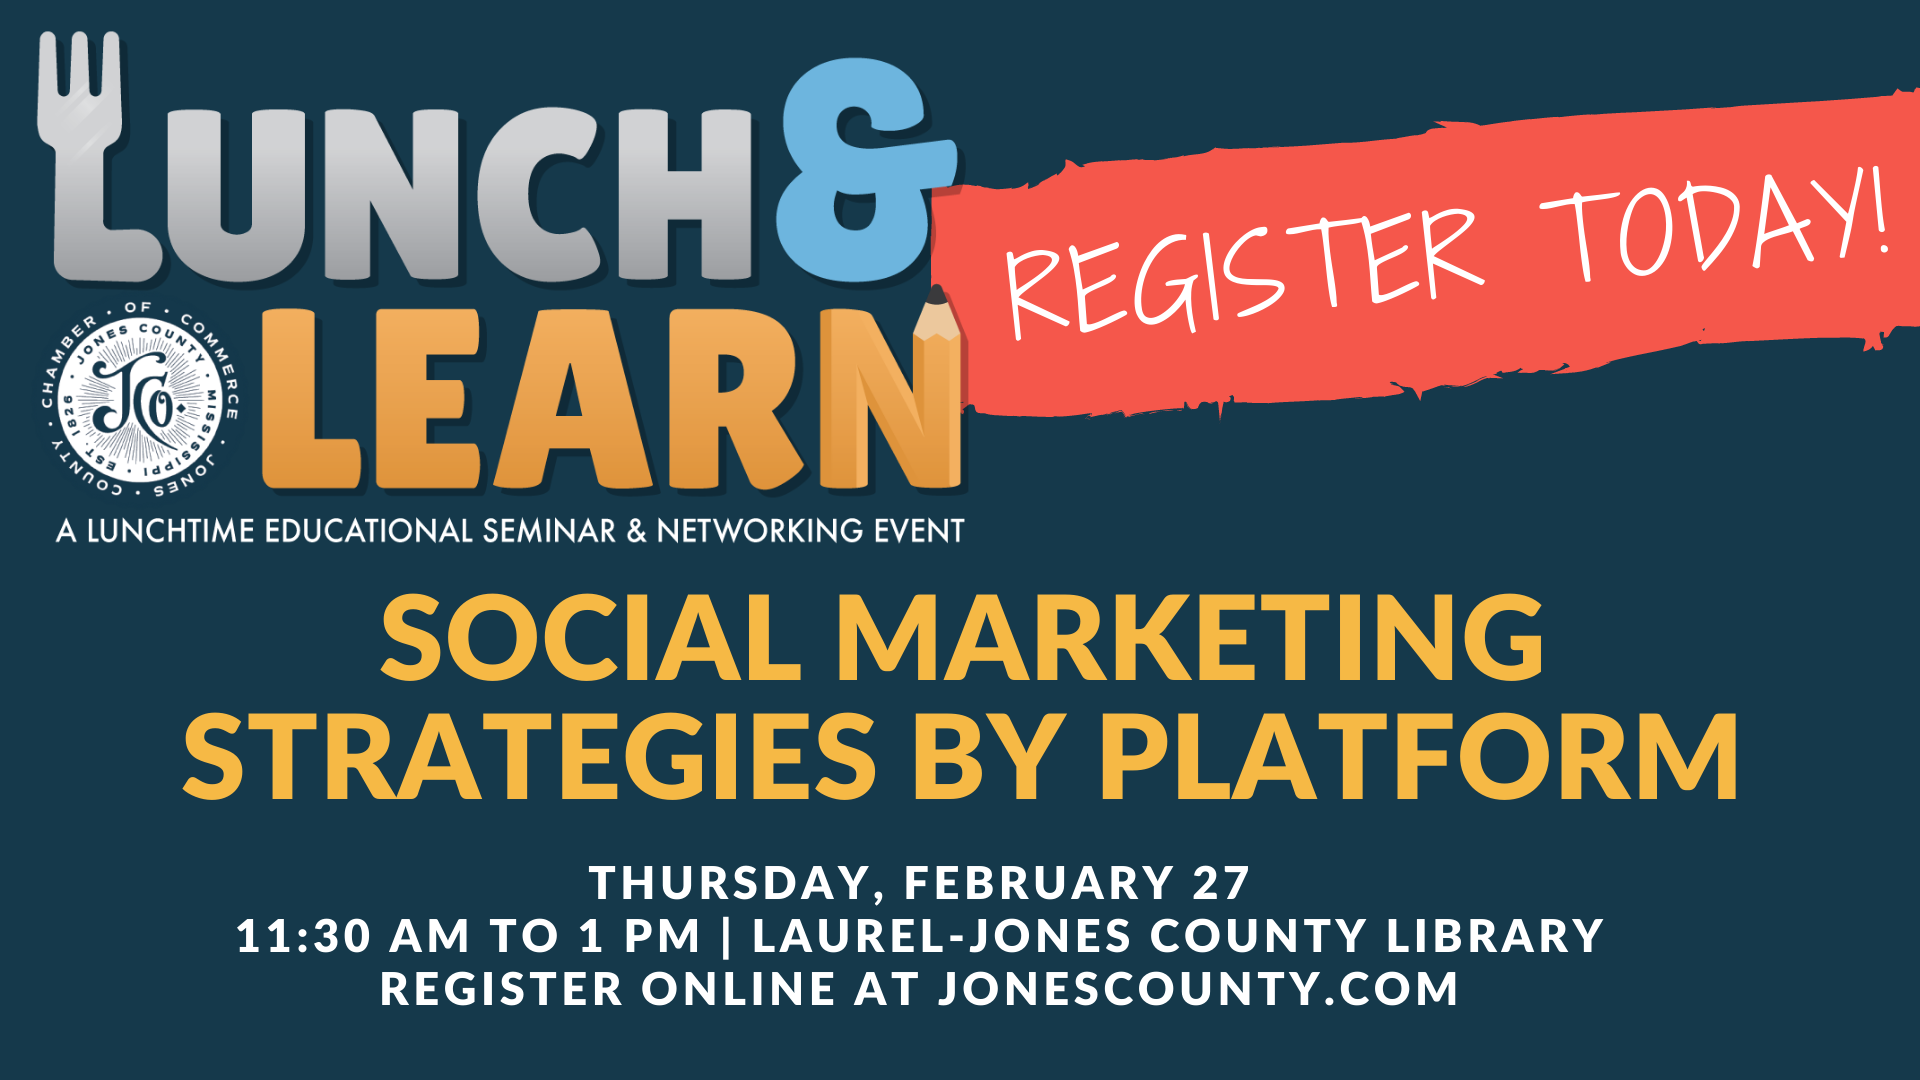 The City of Laurel, Lunch & Learn: Social Marketing Strategies by Platform